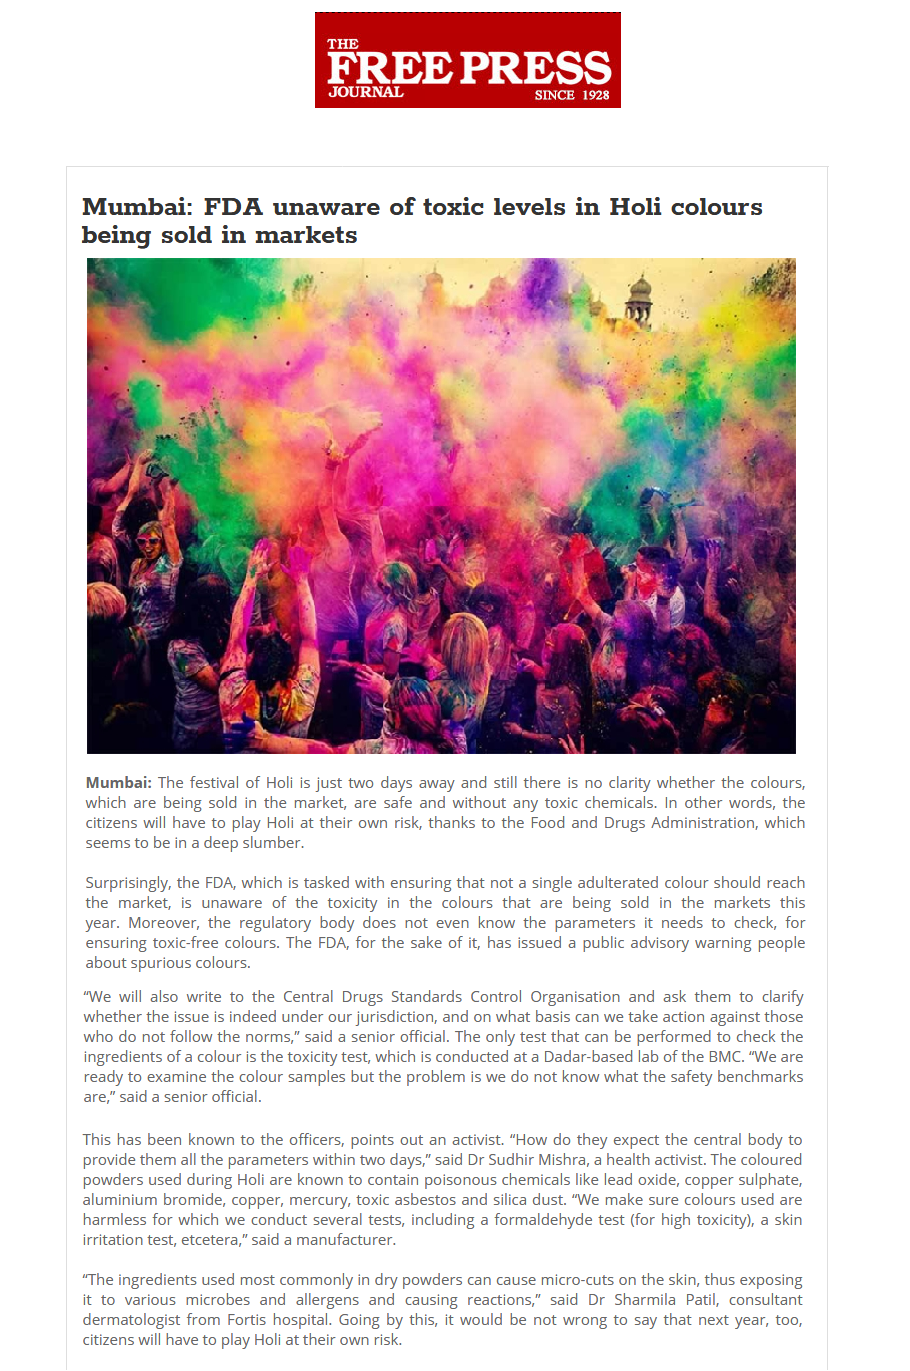 News - FDA Unaware of Toxic Levels in Holi Colours Being Sold in Markets